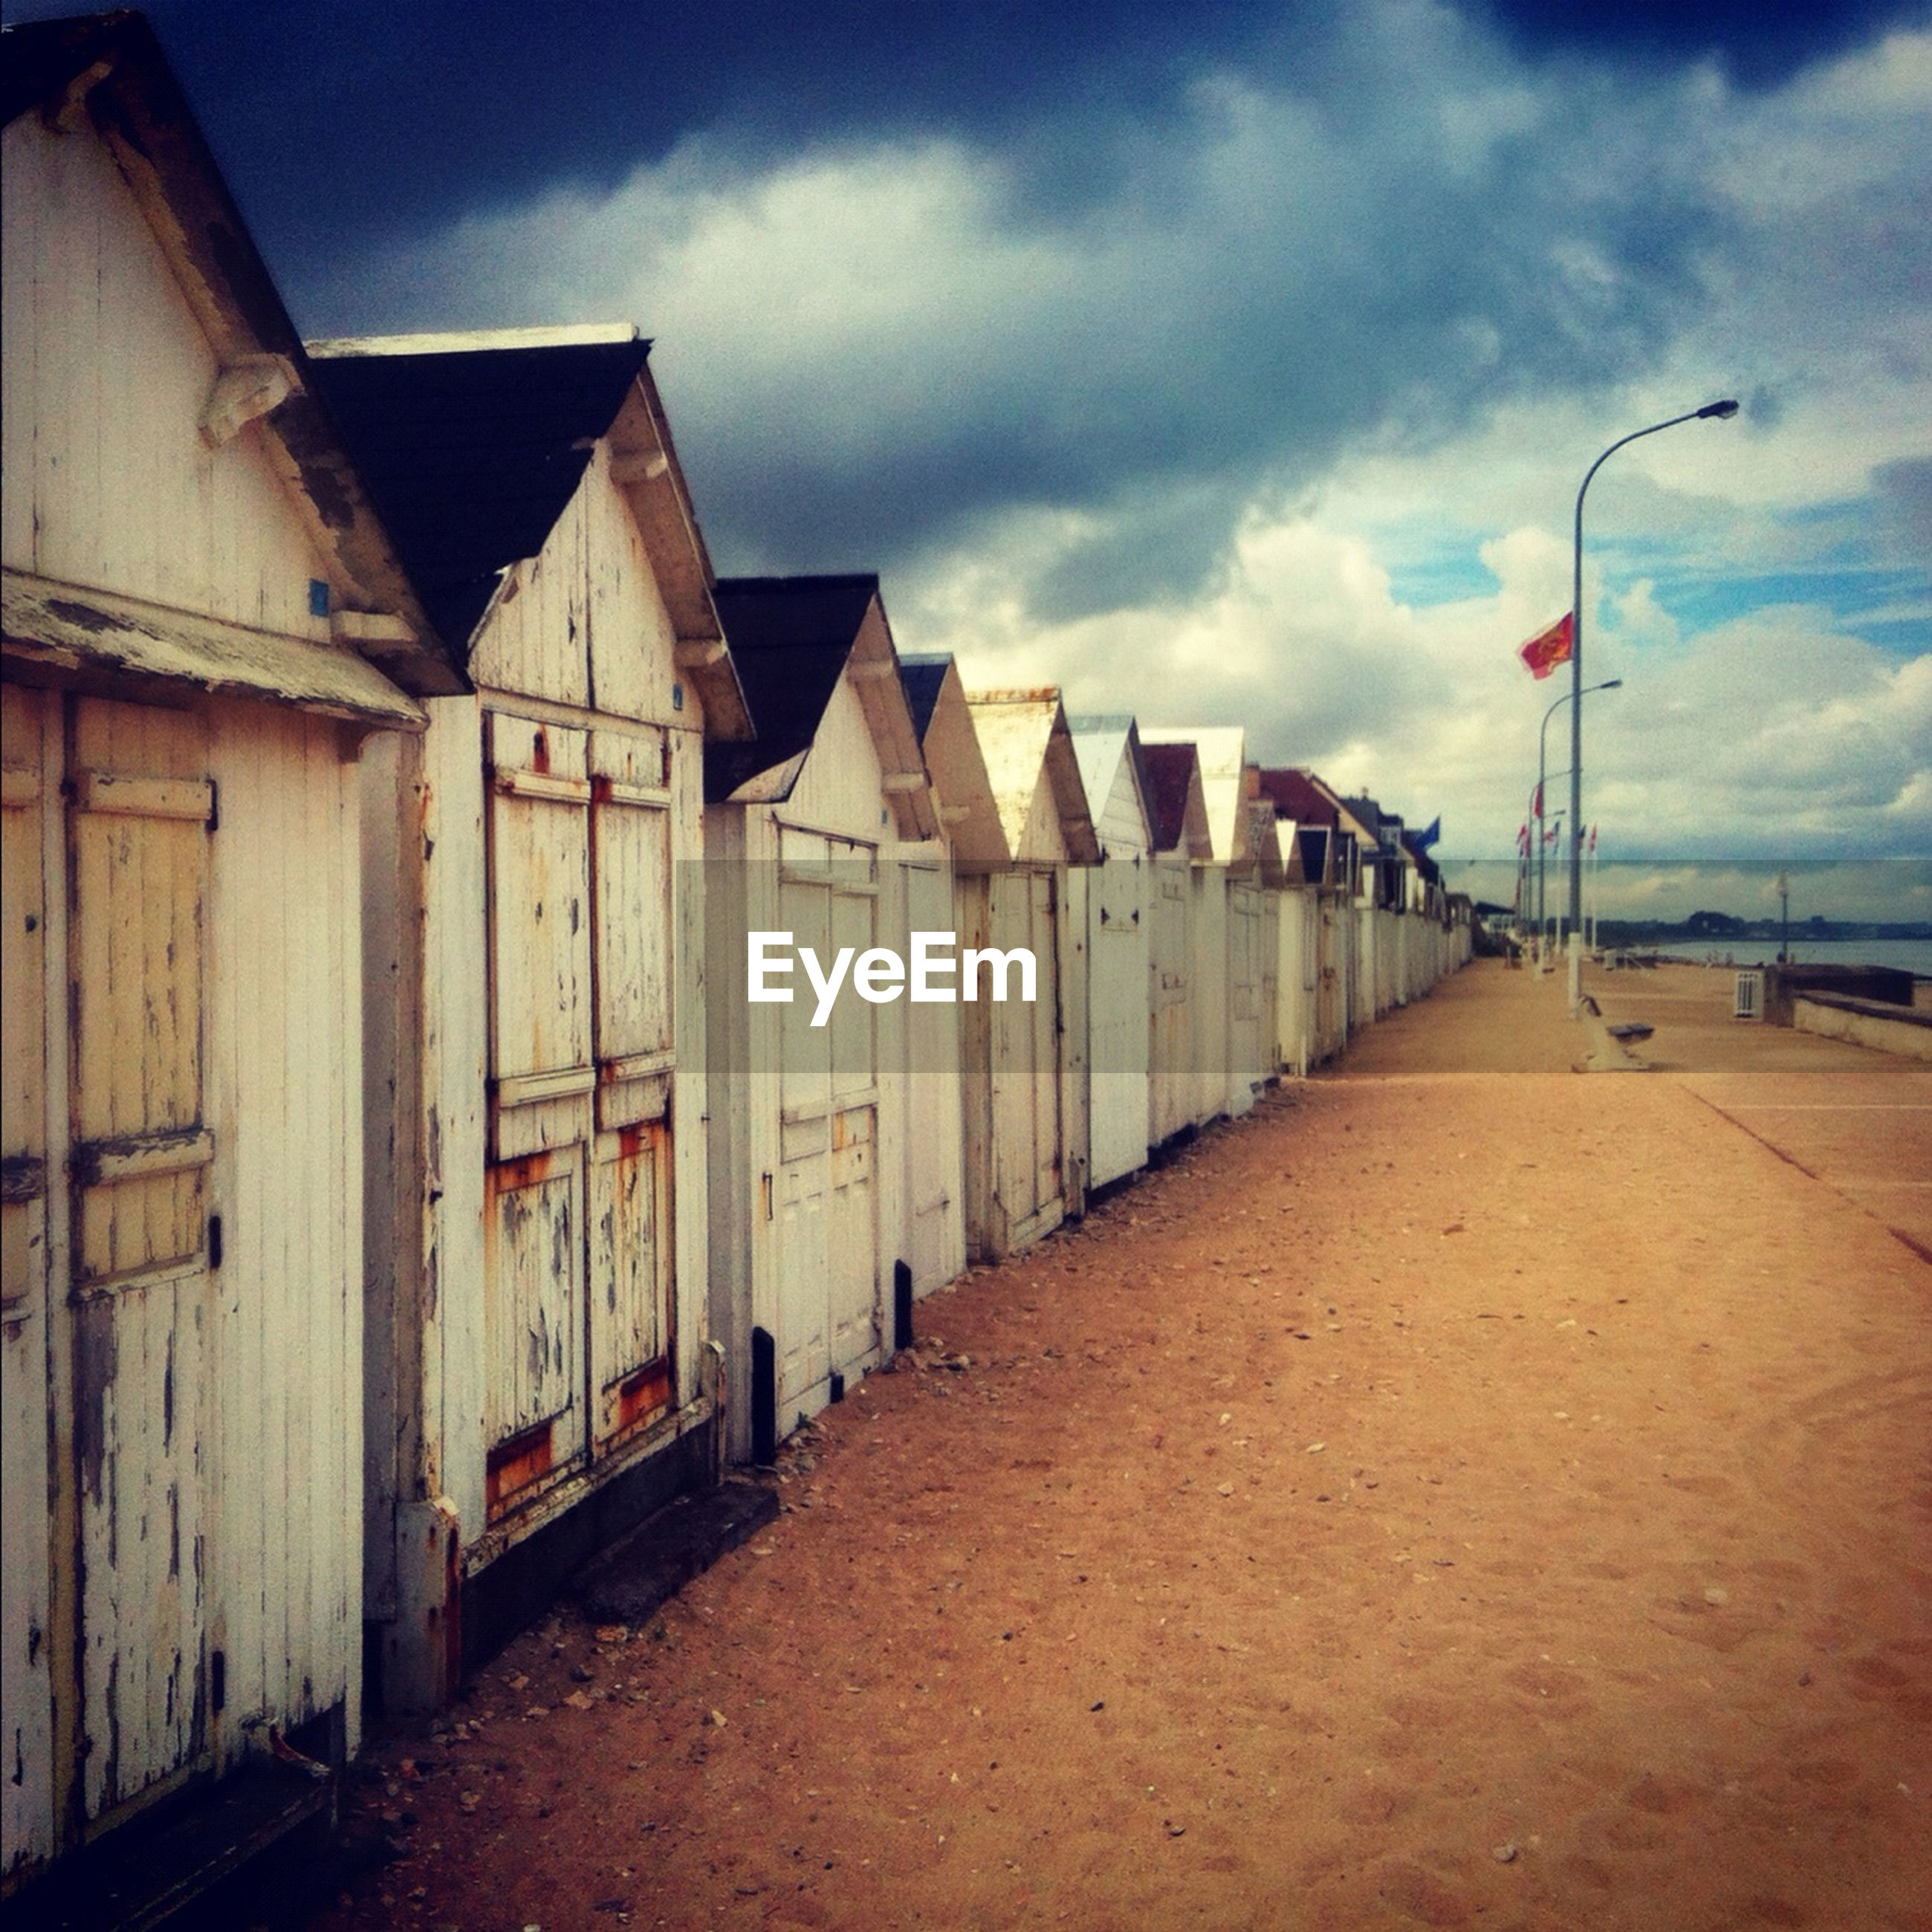 Old beach huts